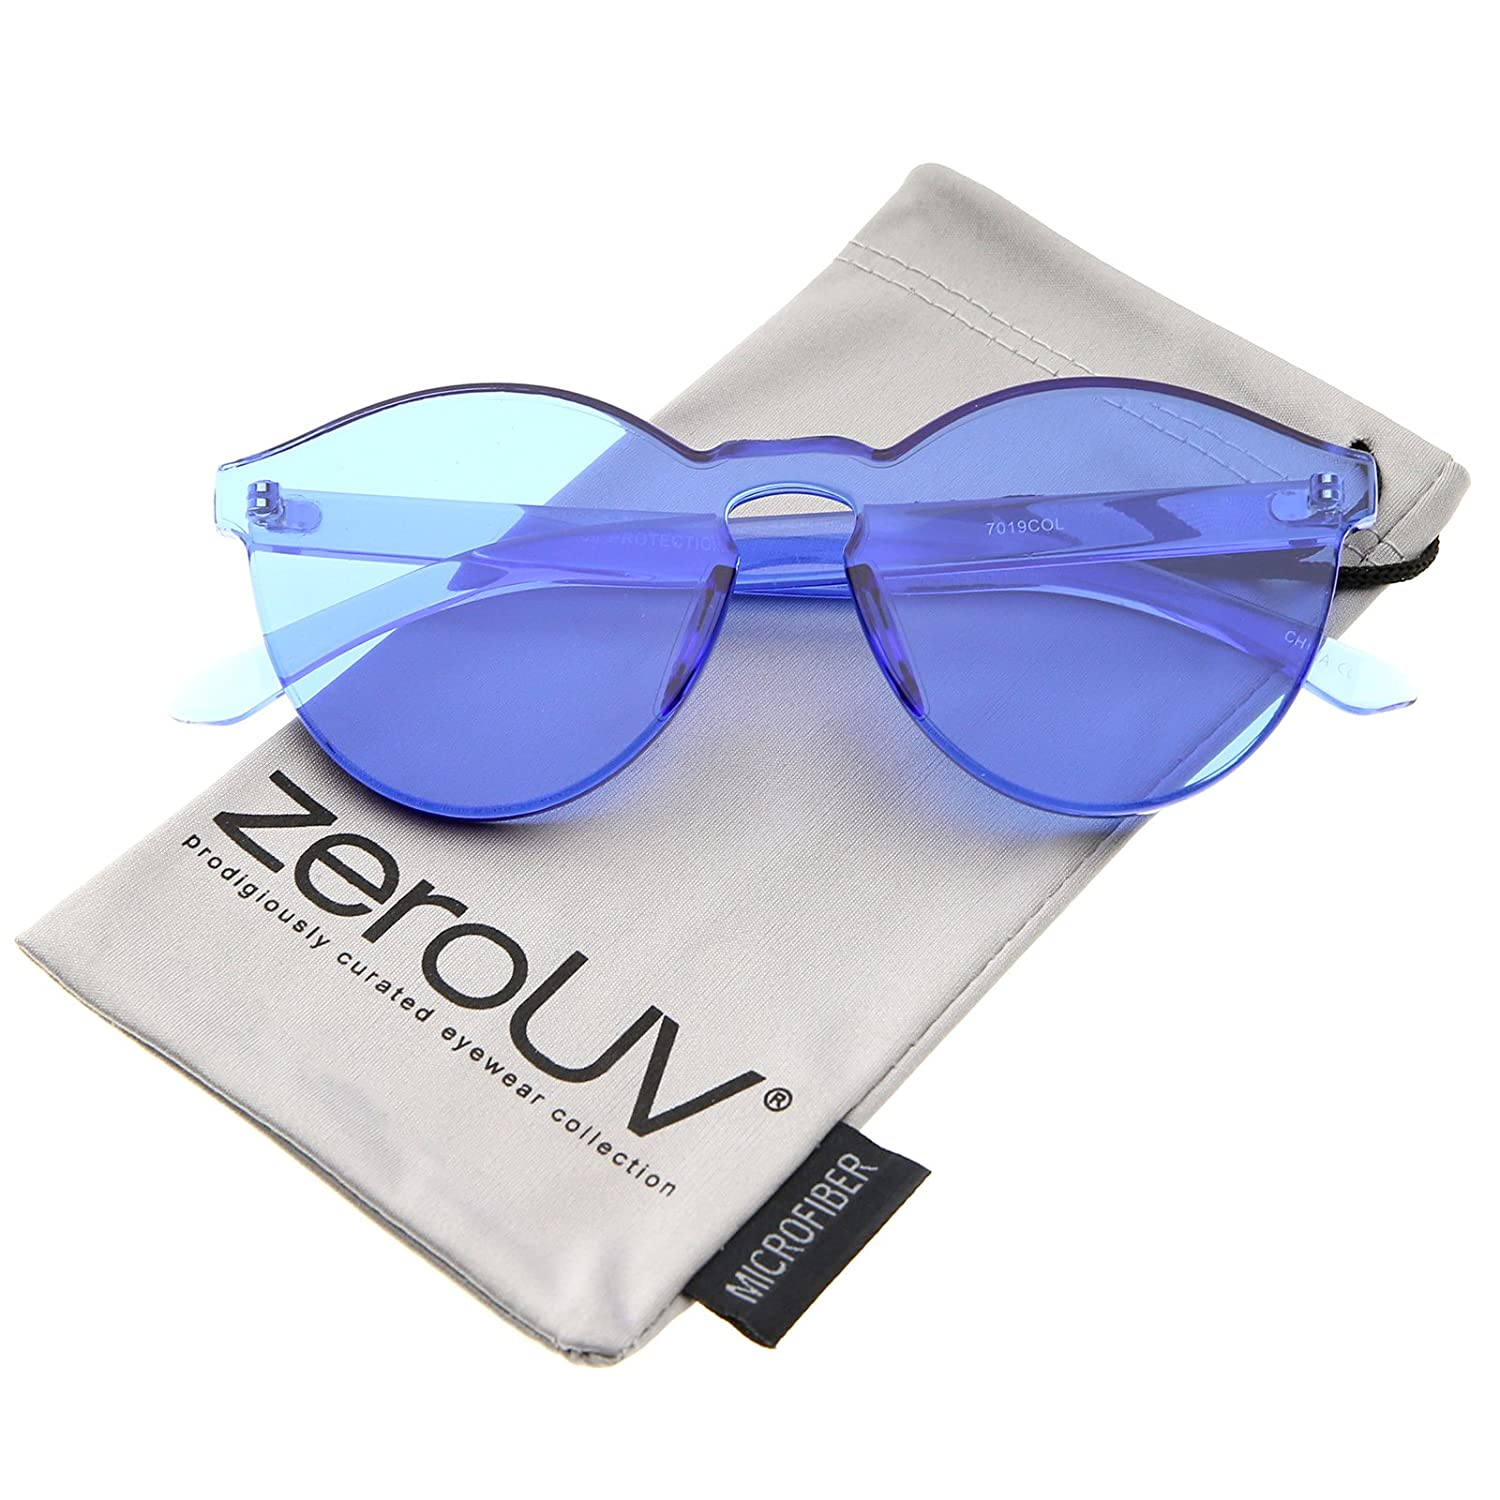 6706e5a9123 Amazon.com  One Piece PC Lens Rimless Ultra-Bold Colorful Mono Block  Sunglasses 60mm (Blue)  Clothing